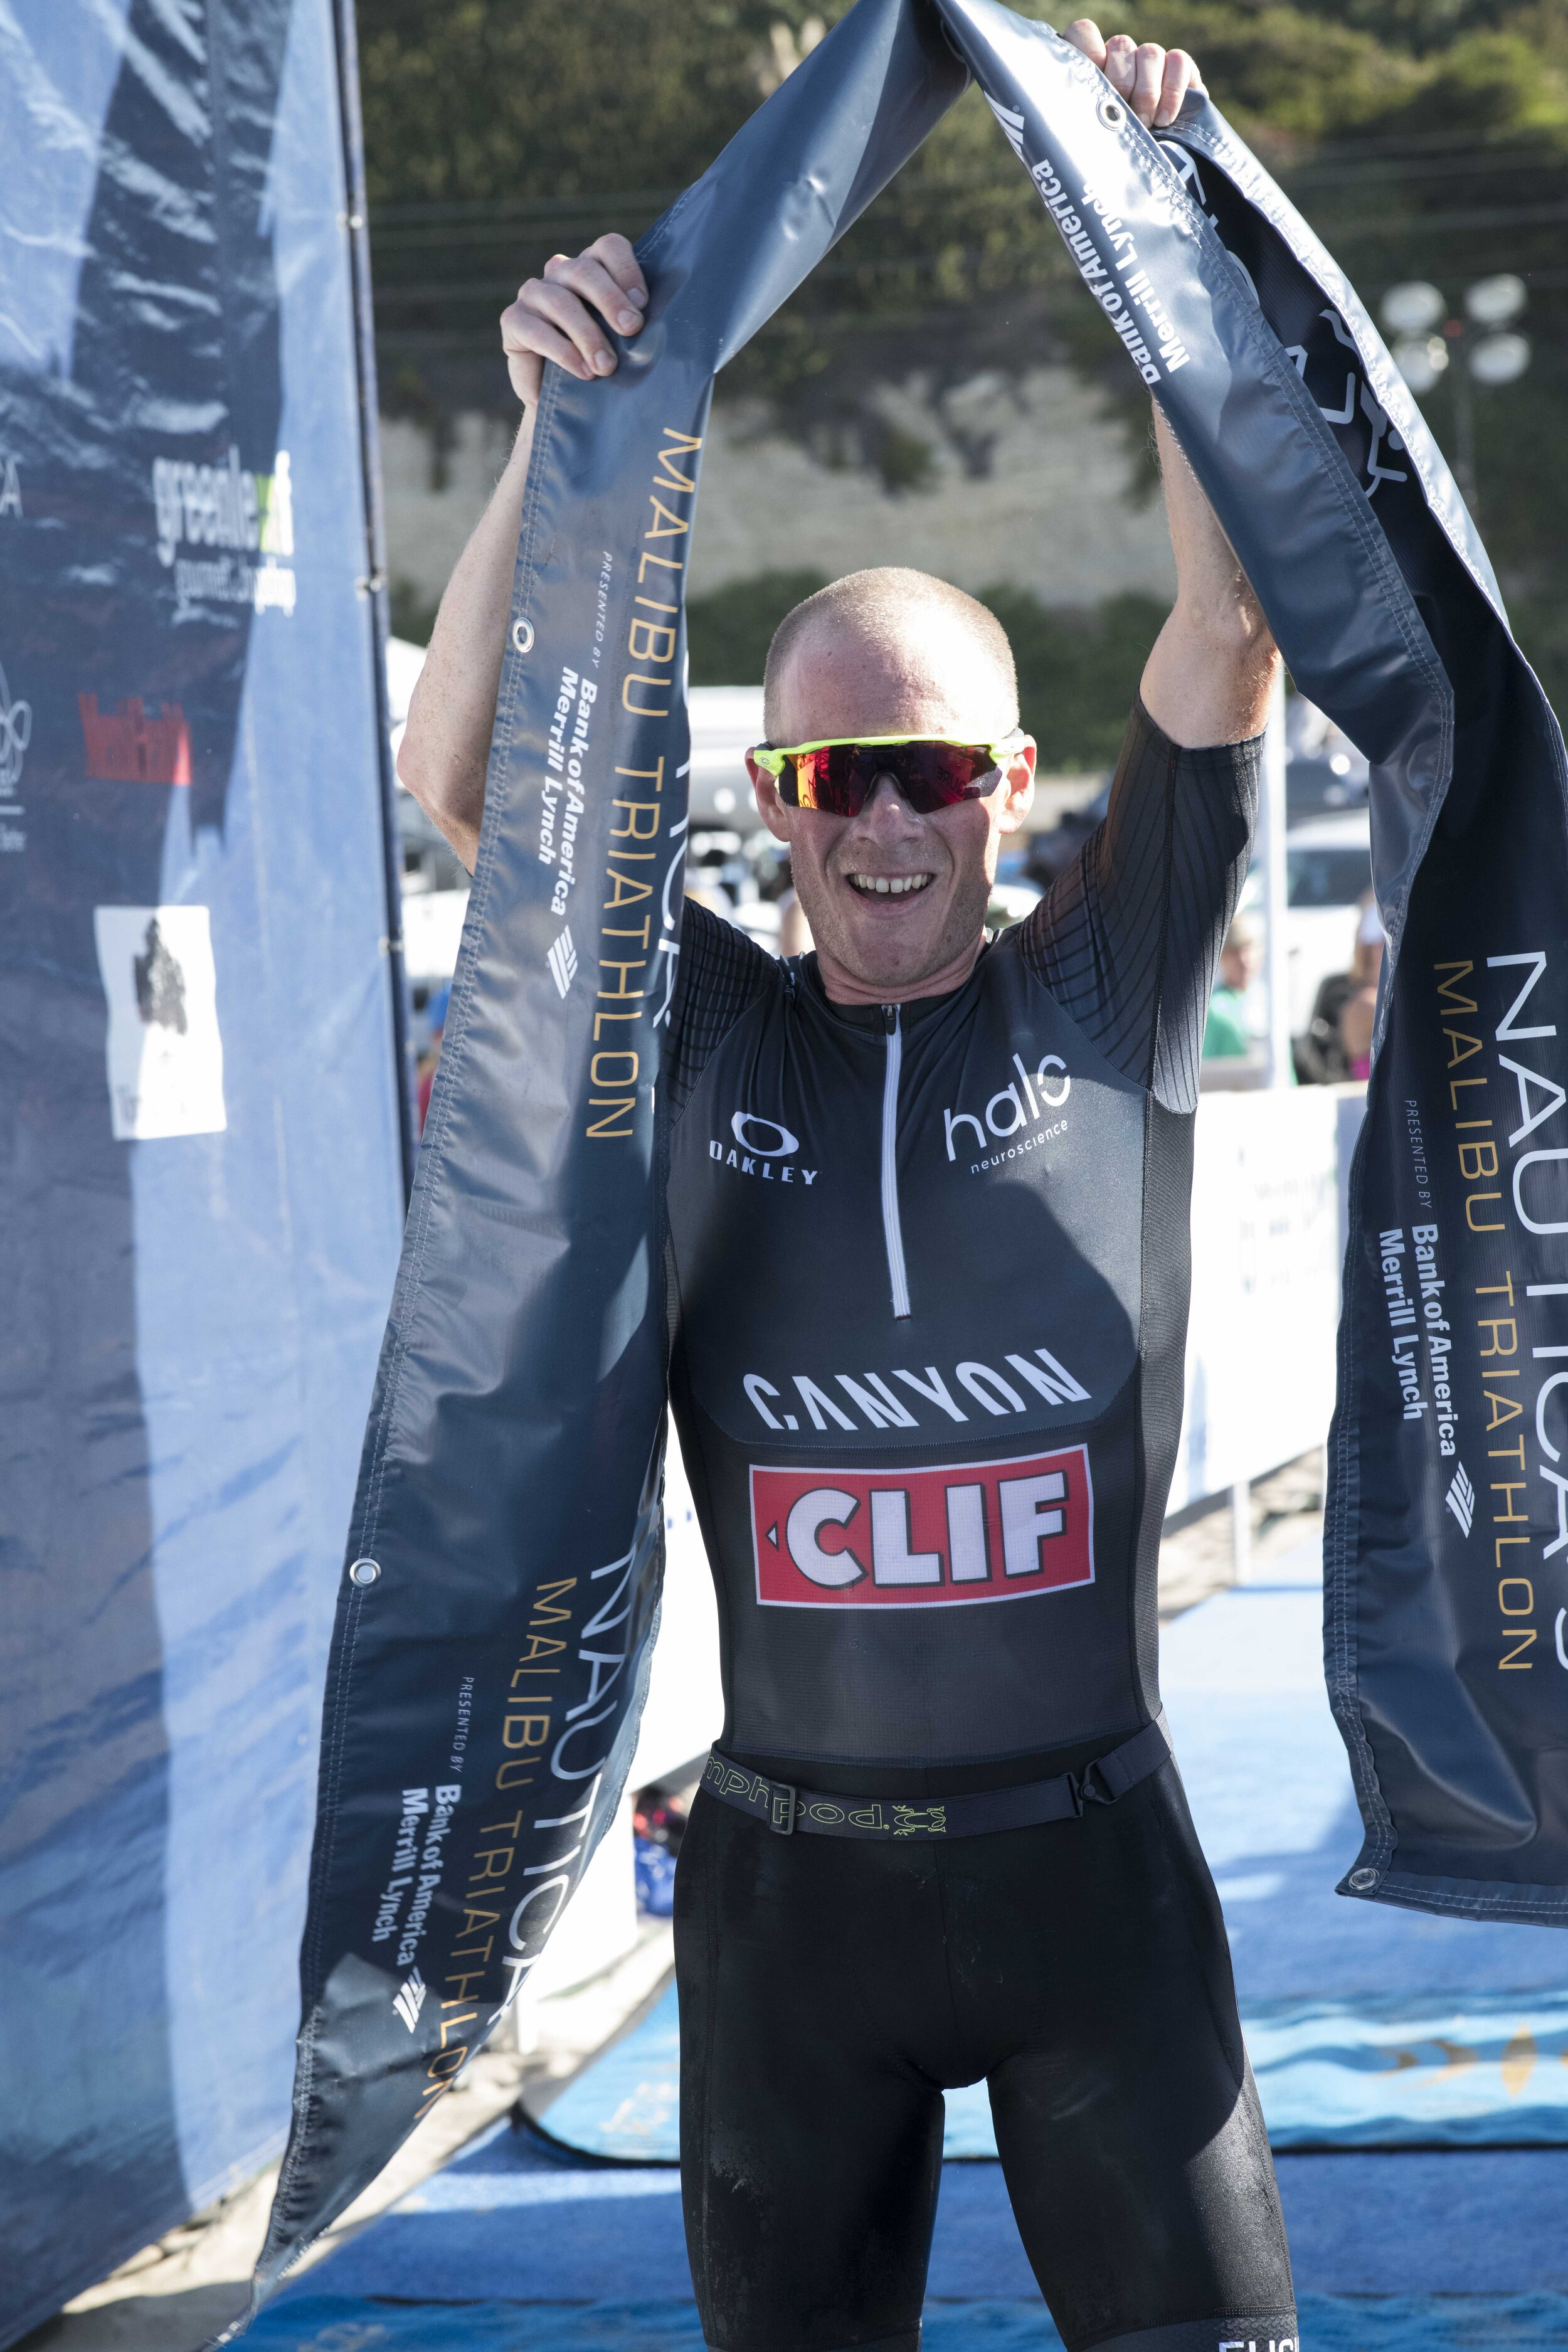 Andrew Talansky celebrates after winning the Olympic Distance Course at the 33rd Nautica Malibu Triathlon on Zuma Beach in Malibu, Calif. on Saturday, September 14, 2019. (Photo by Kevin Tidmore/The Corsair)